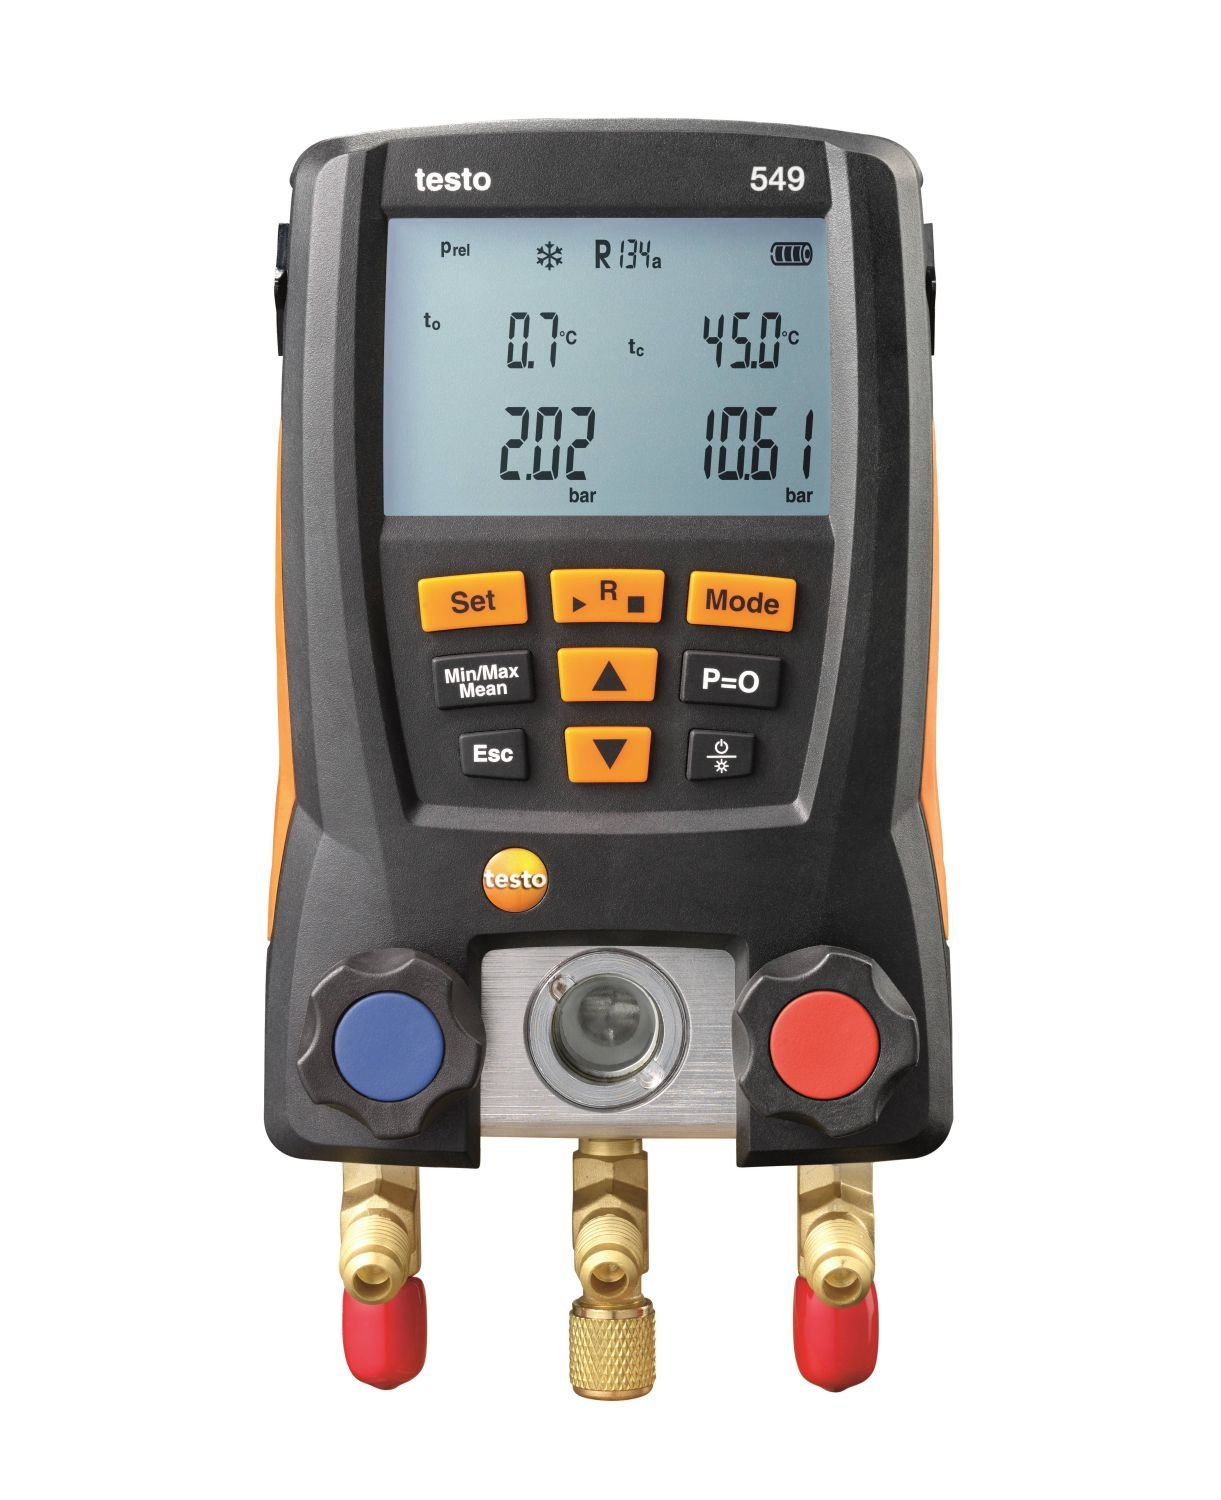 Testo 549 - Digital Manifold Basic Level Electronic Refrigerant Table For Refrigeration System and Heat Pump Installation and Maintenance